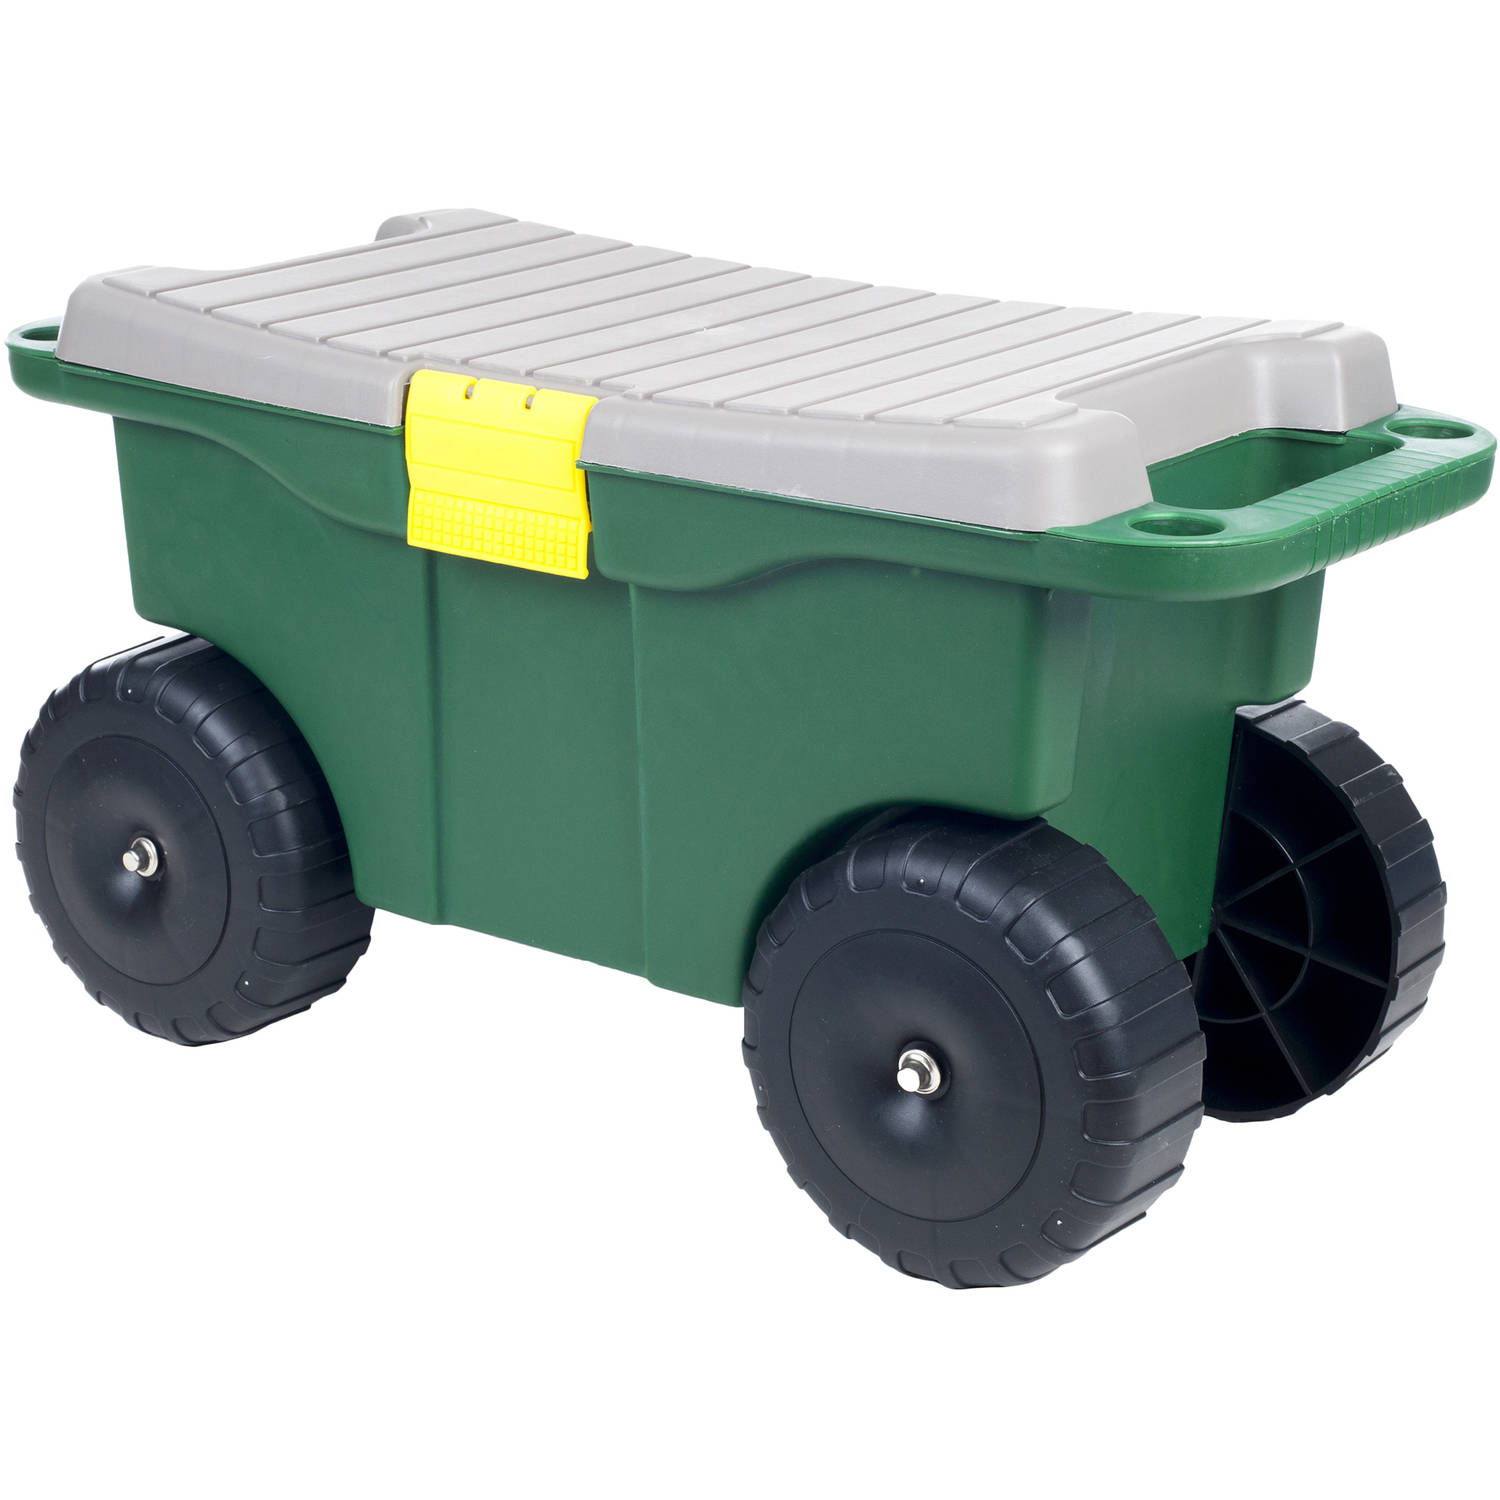 "Image of Pure Garden 20"" Plastic Garden Storage Cart and Scooter"